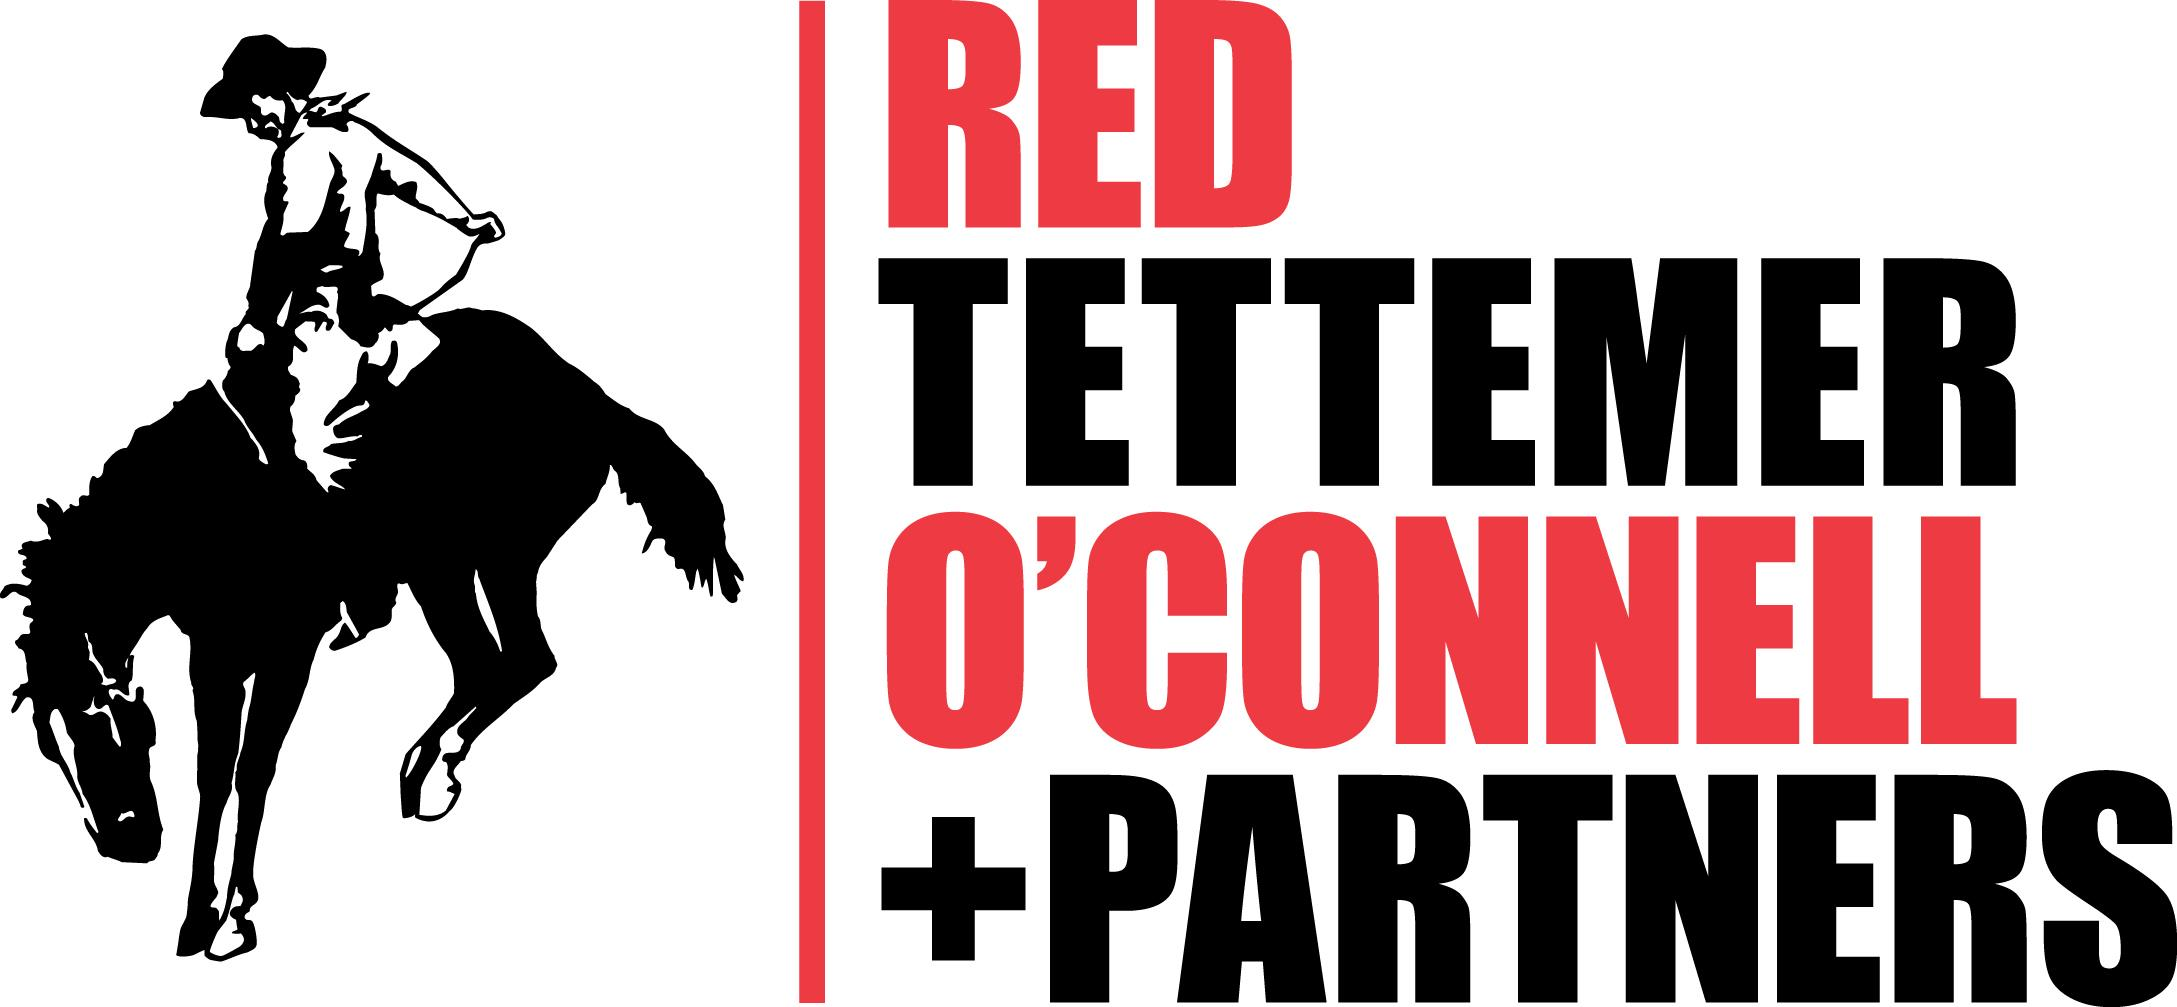 Red Tettemer O